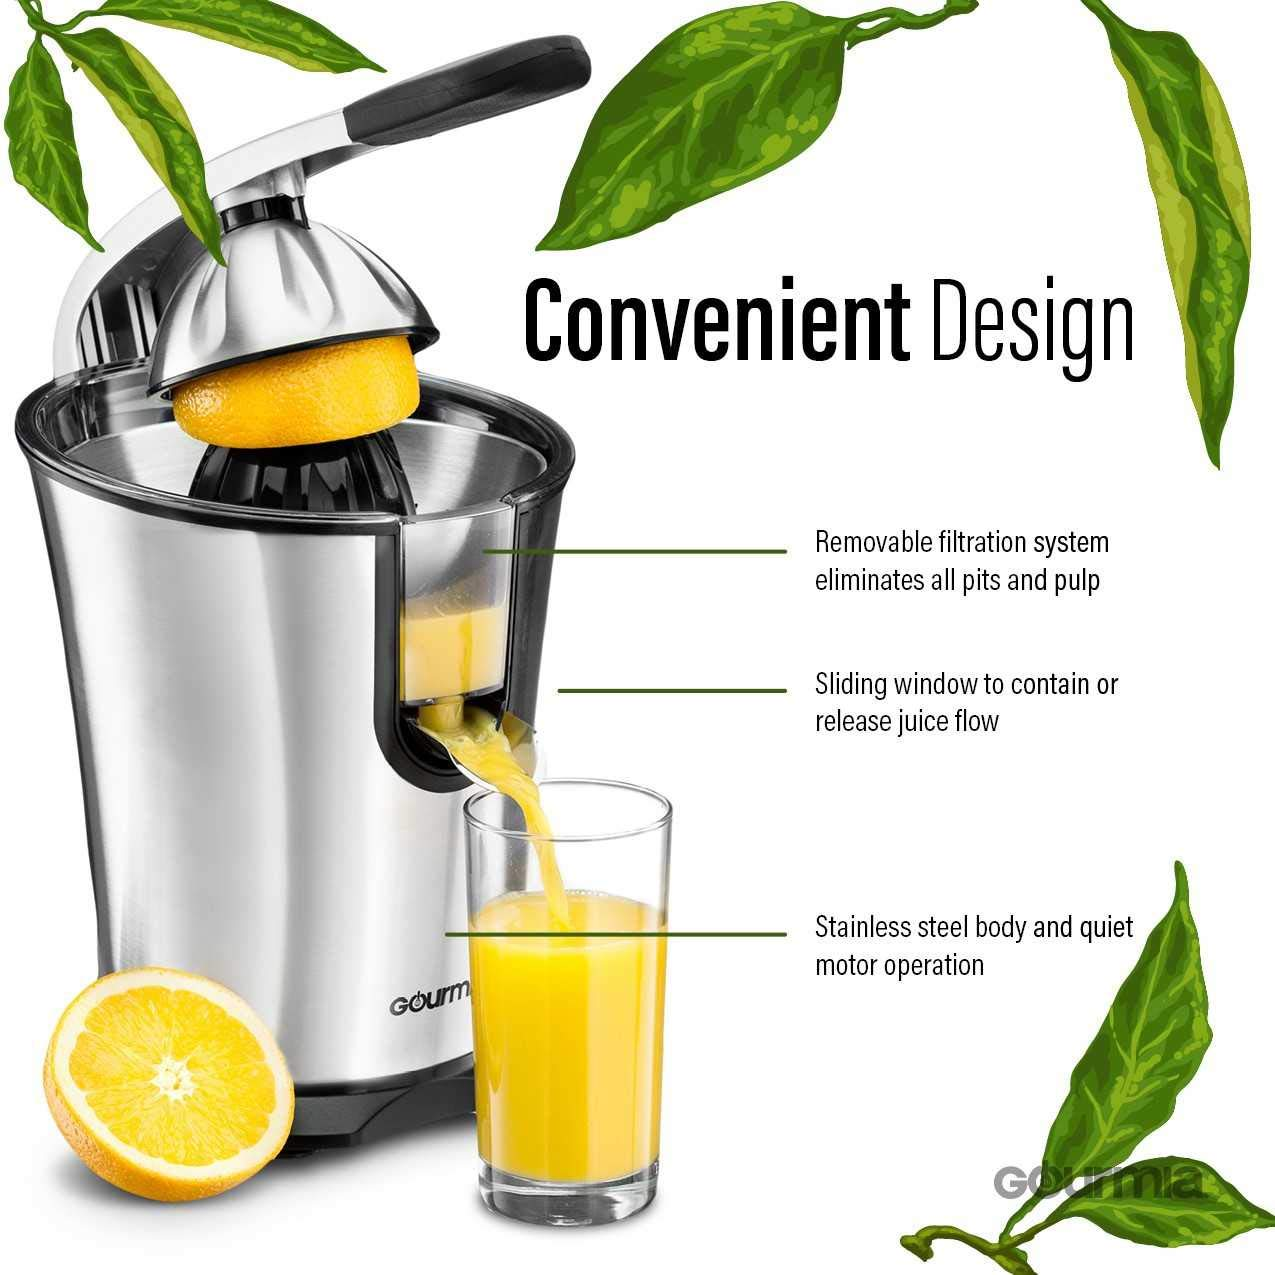 Gourmia EPJ100 Electric Citrus Juicer Stainless Steel 10 QT 160 Watts Rubber Handle and Cone Lid for Easy Use One-Size-Fits-All Juice Cone